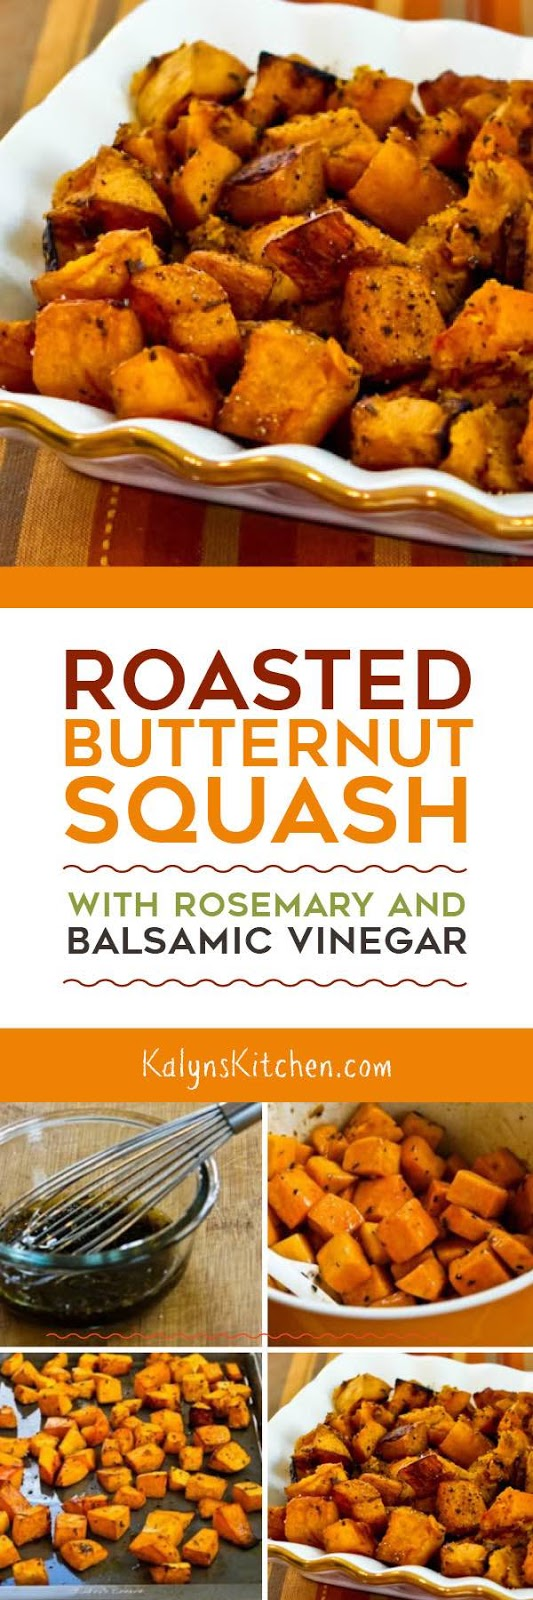 Roasted Butternut Squash With Rosemary And Balsamic